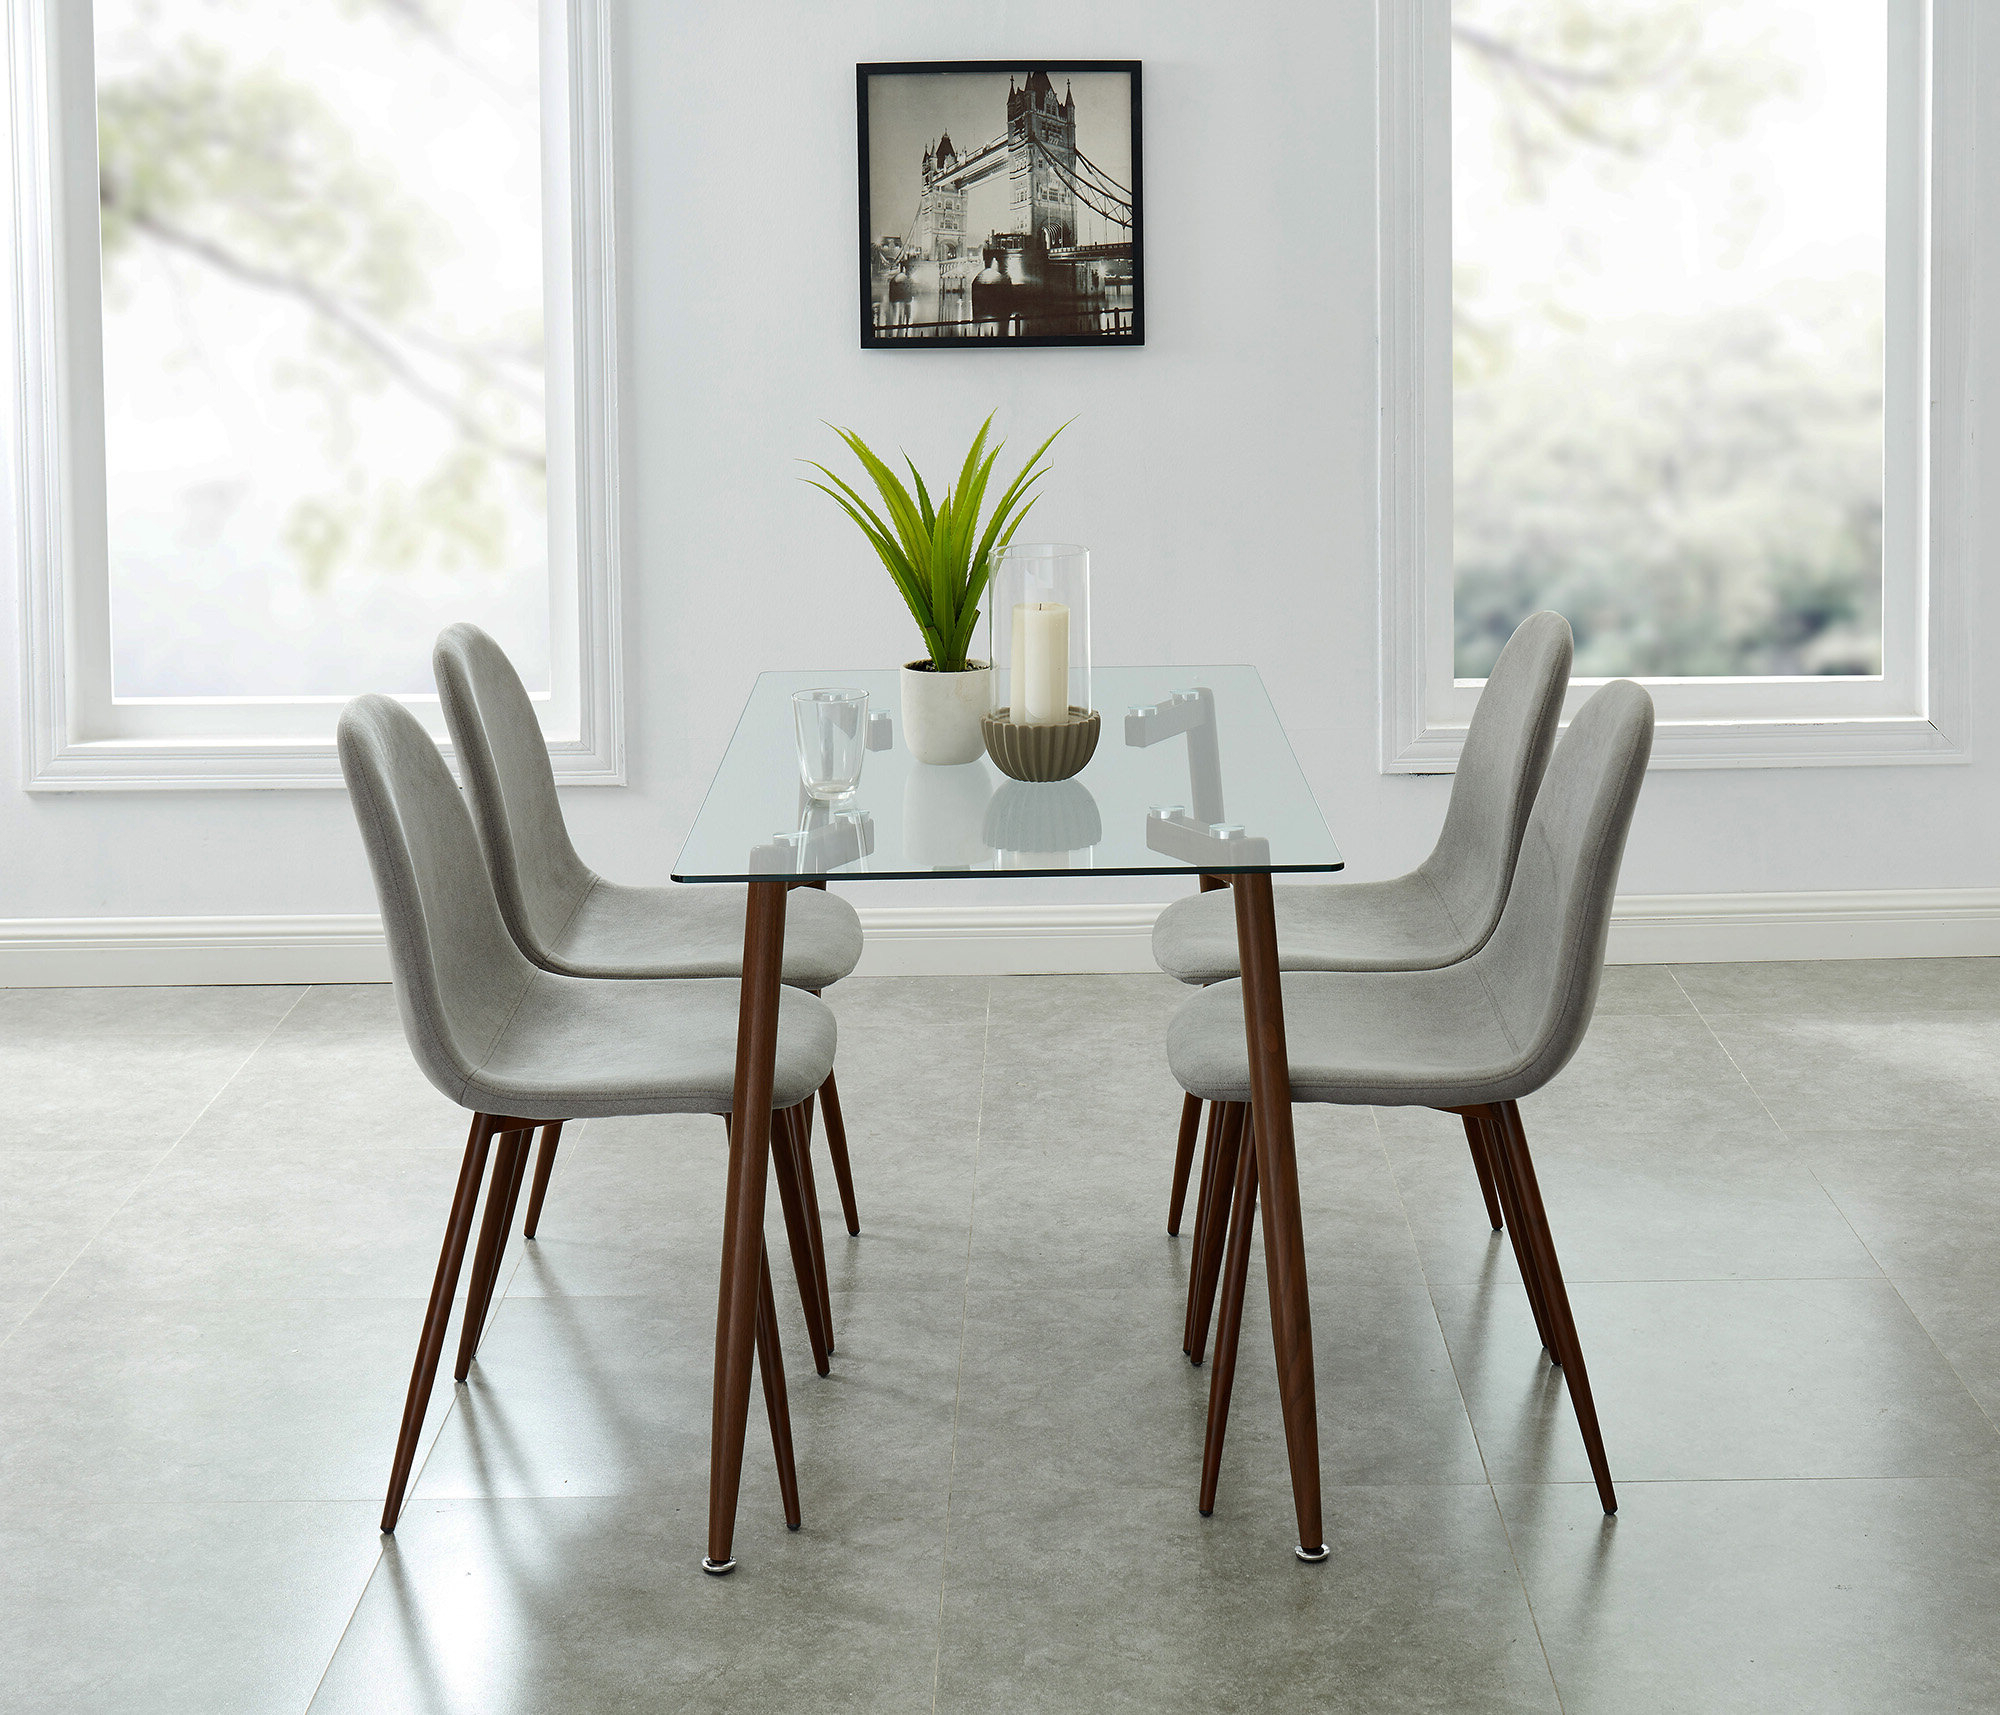 Travon 5 Piece Dining Sets Throughout Most Up To Date Madonna Contemporary 5 Piece Dining Set (View 14 of 20)